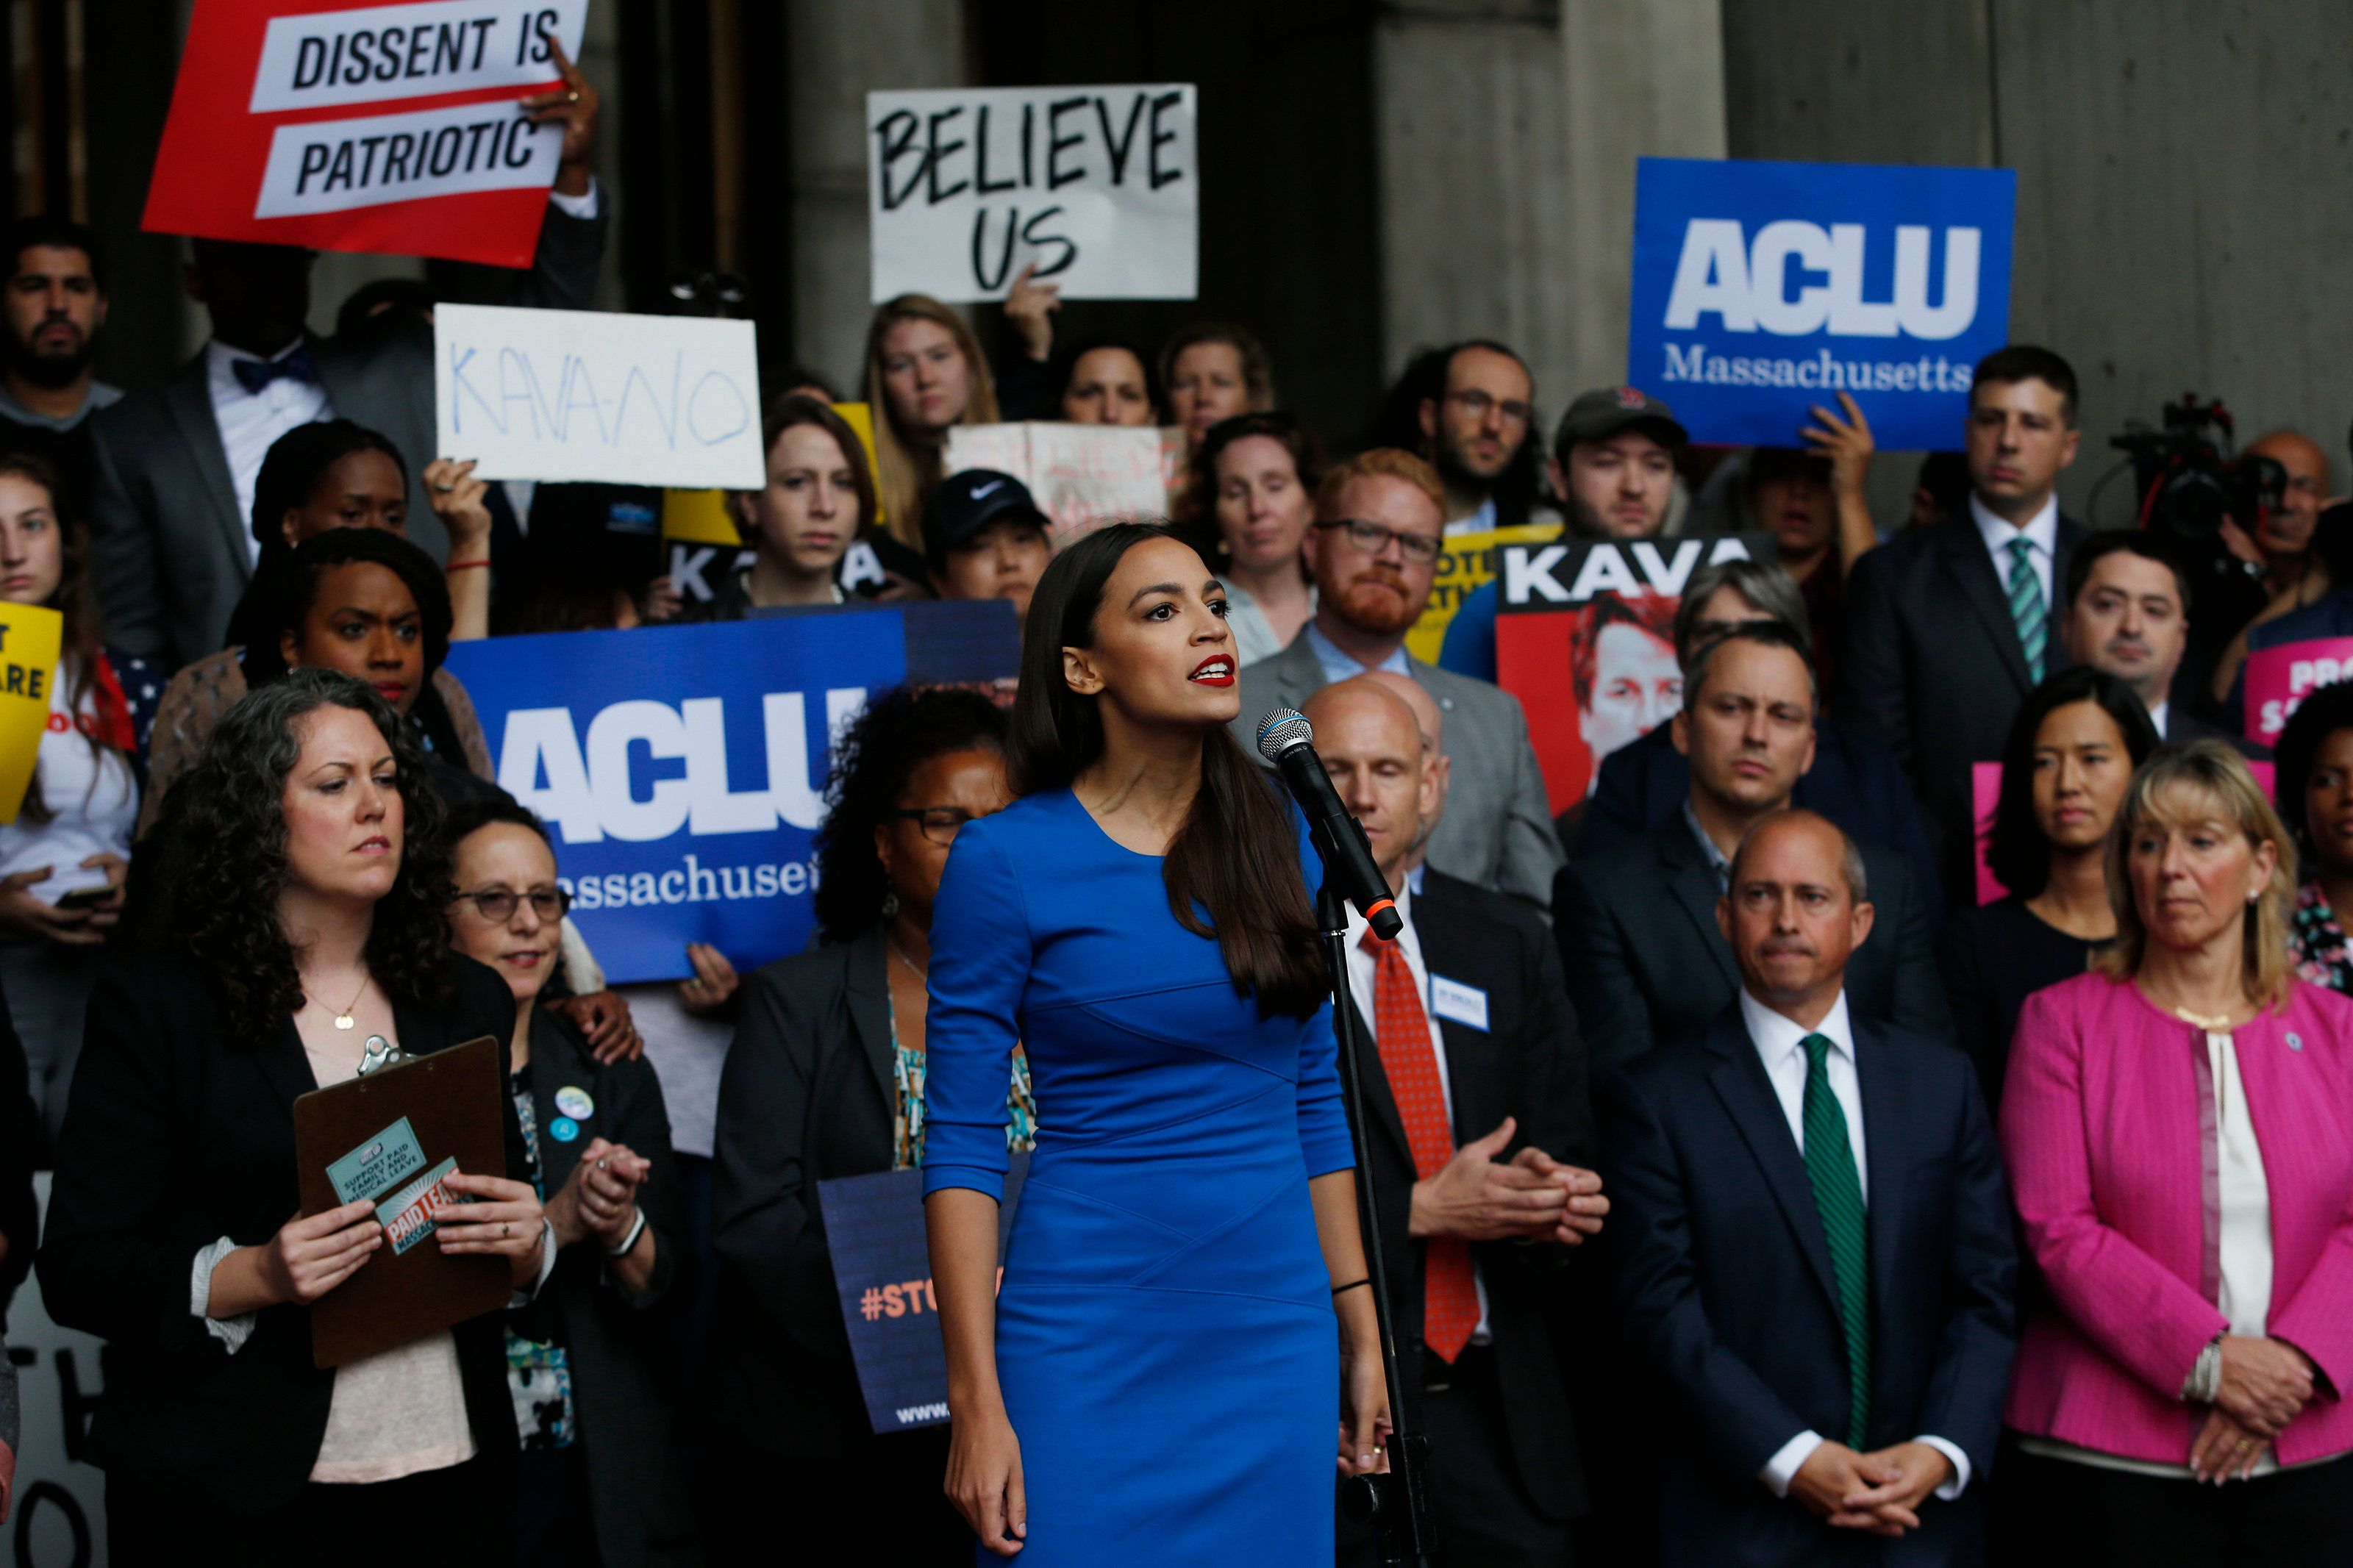 Alexandria Ocasio-Cortez, Democrat rock star makes history